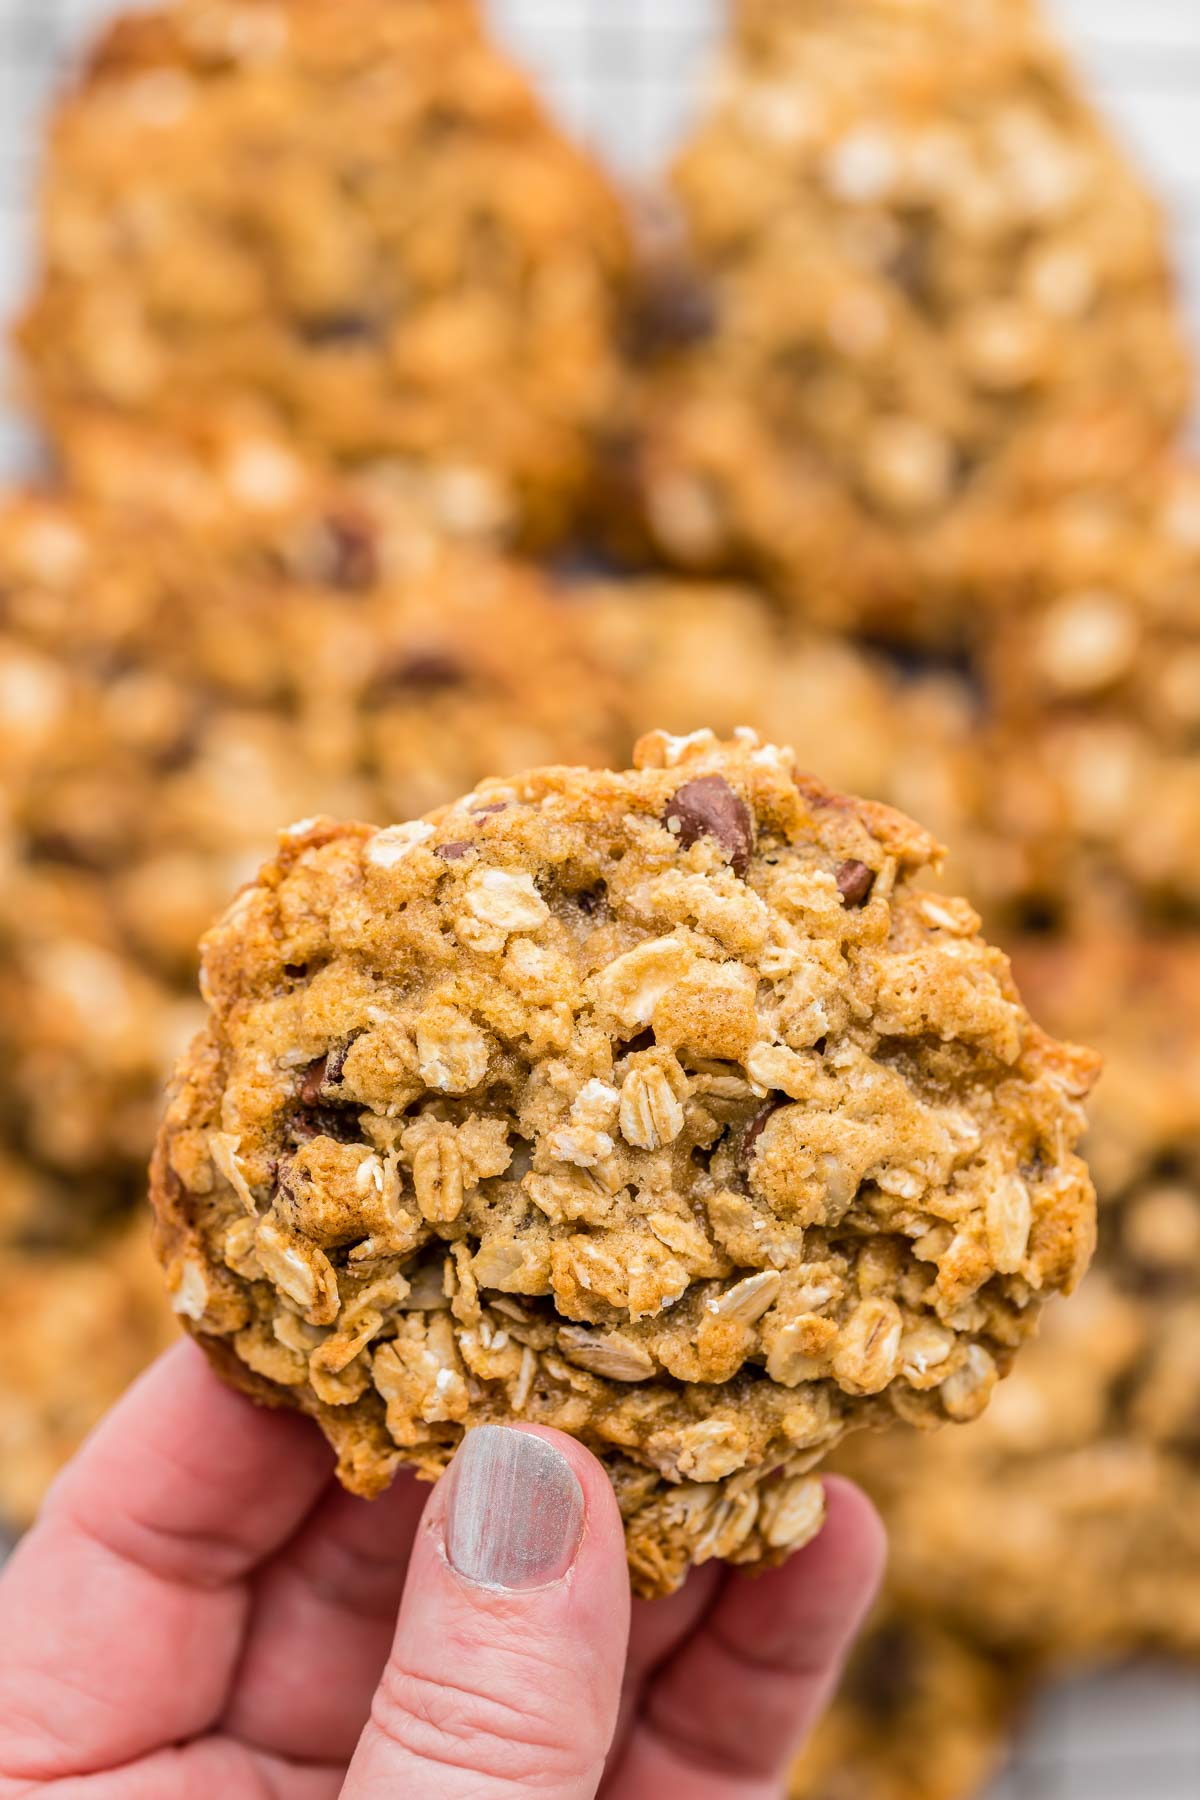 A hand holding a healthy oatmeal chocolate chip cookie